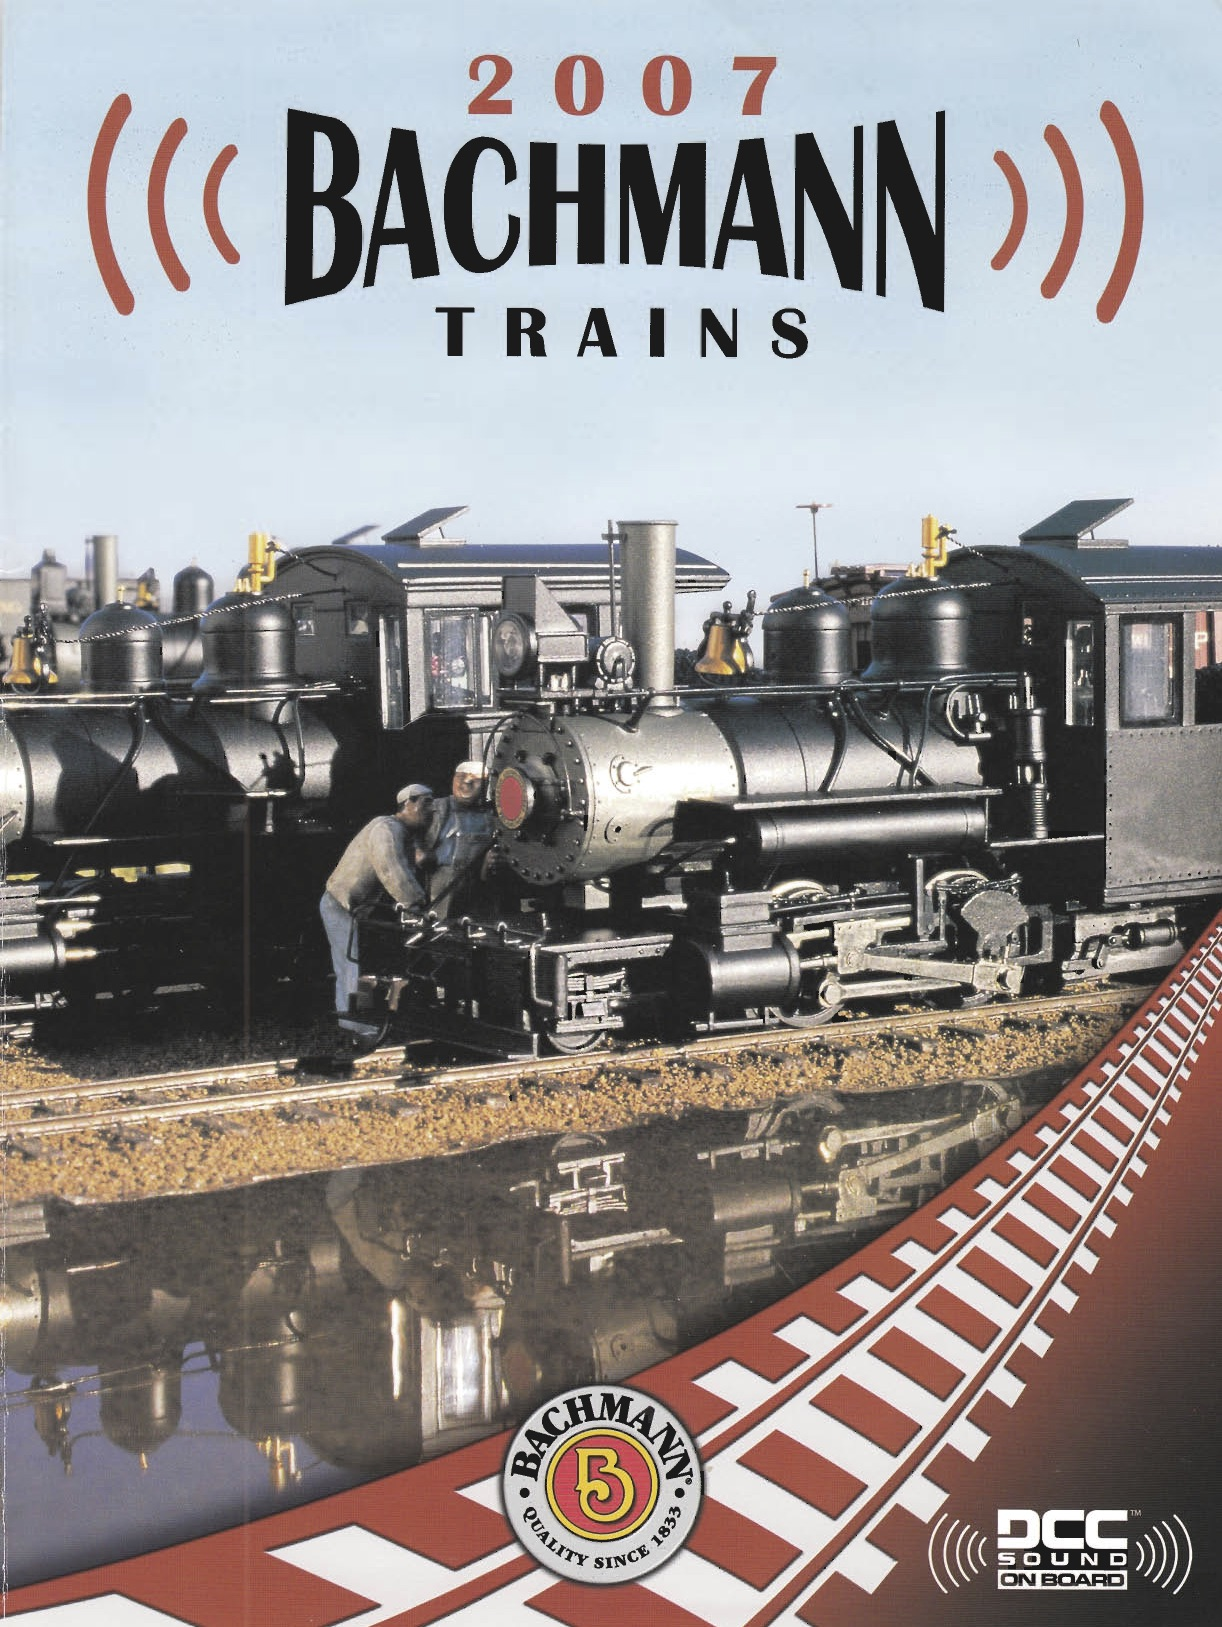 Bachmann Trains Katalog (Catalogue) 2007